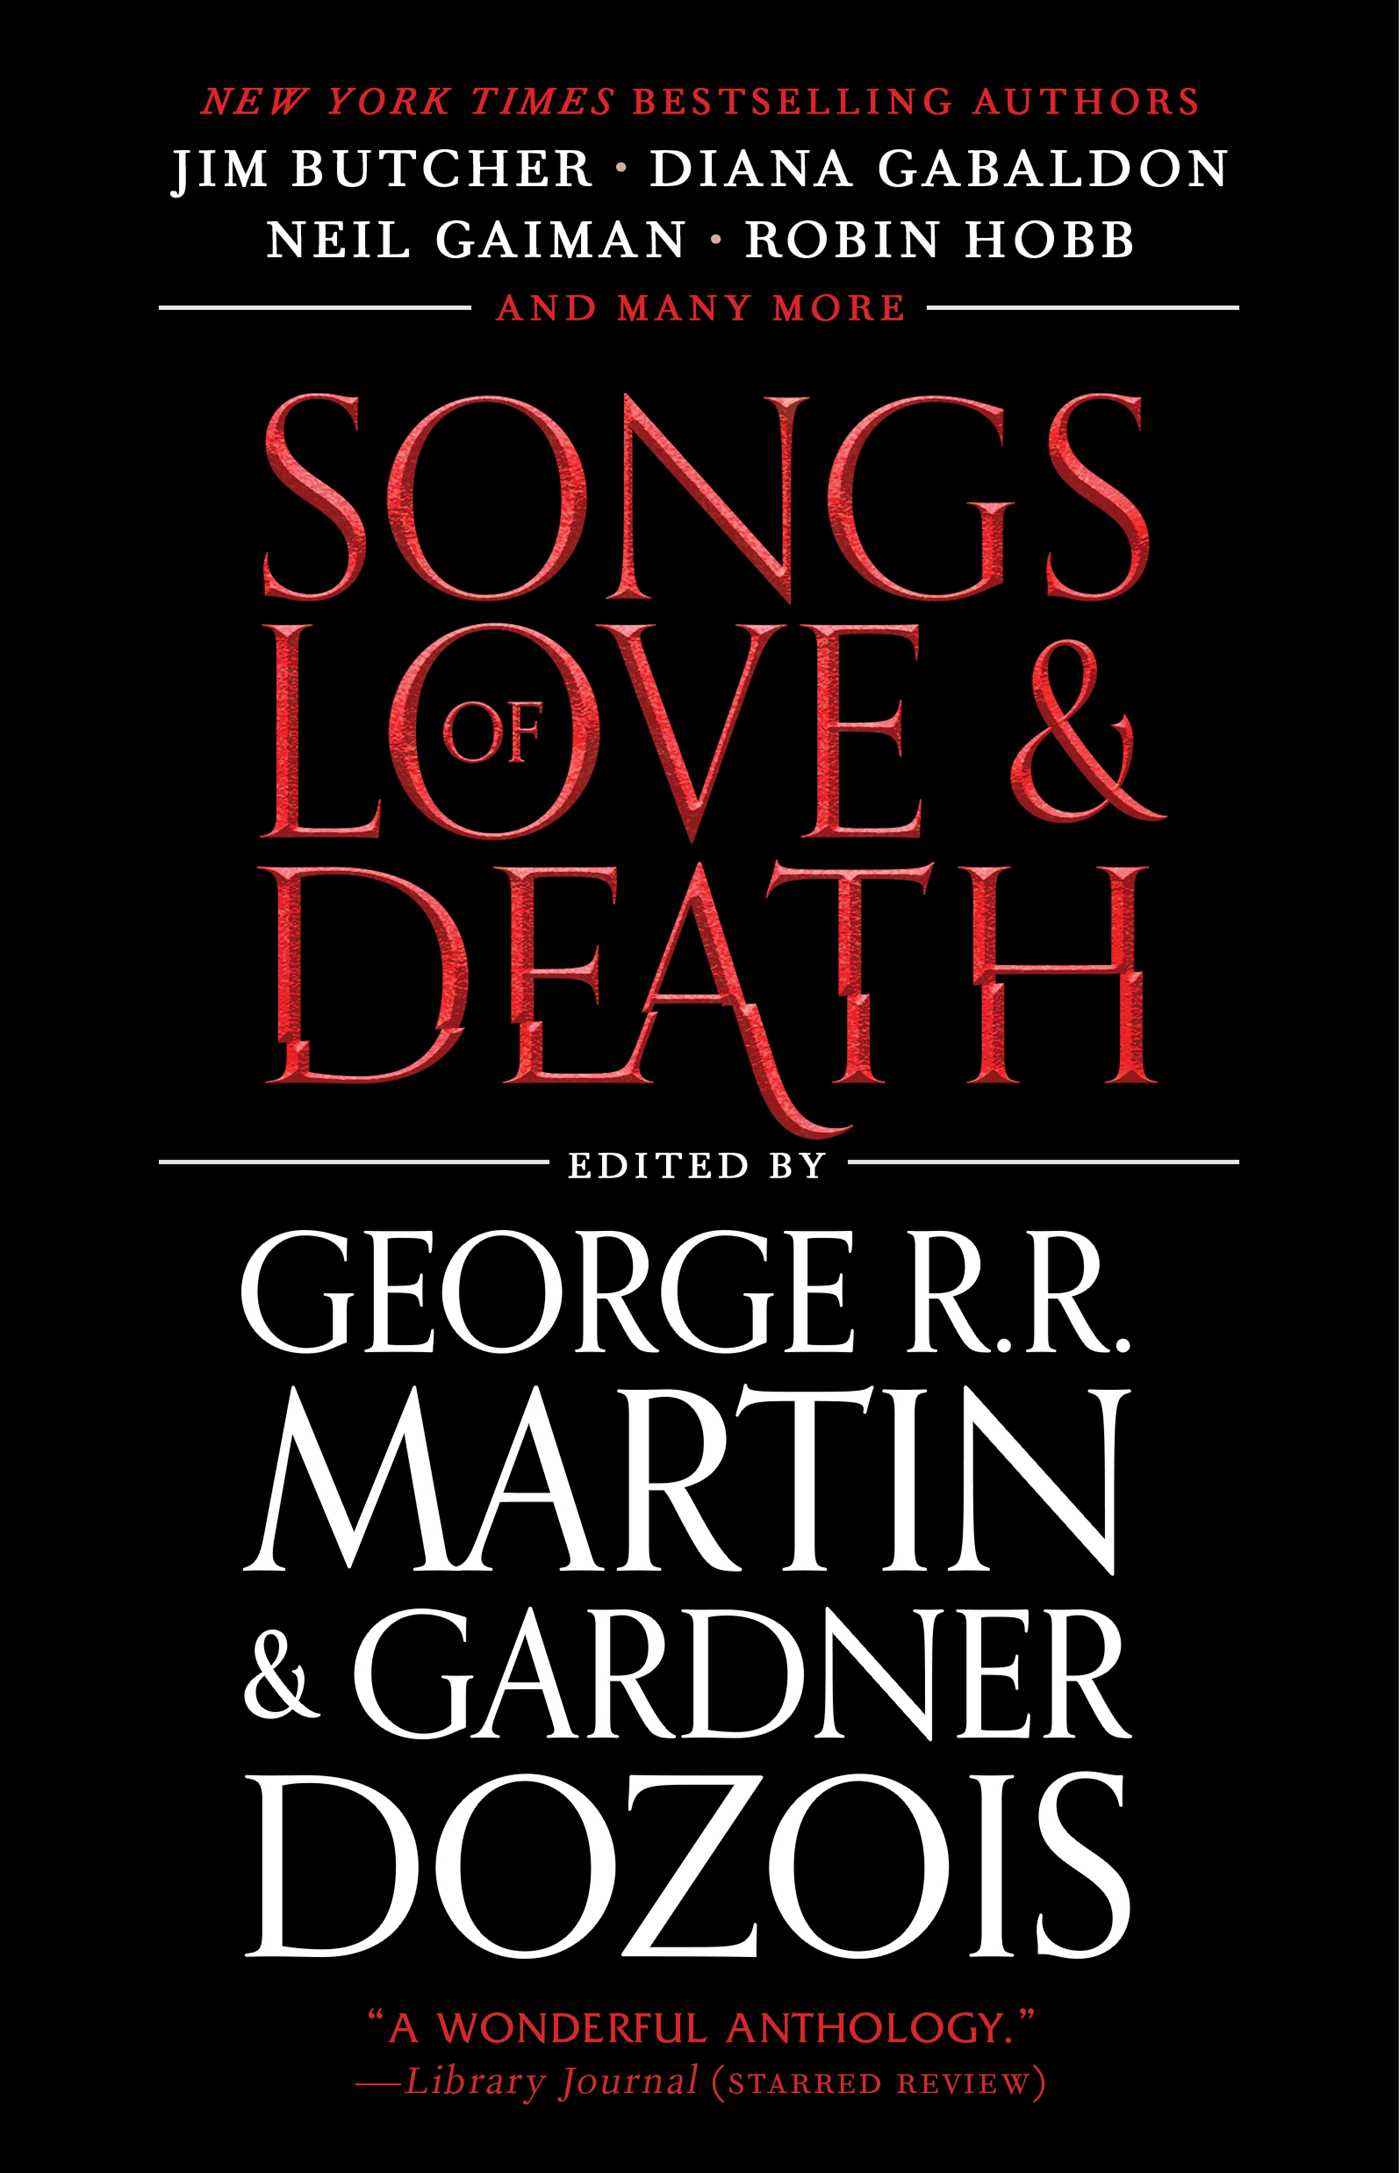 Songs of love and death 9781439170830 hr